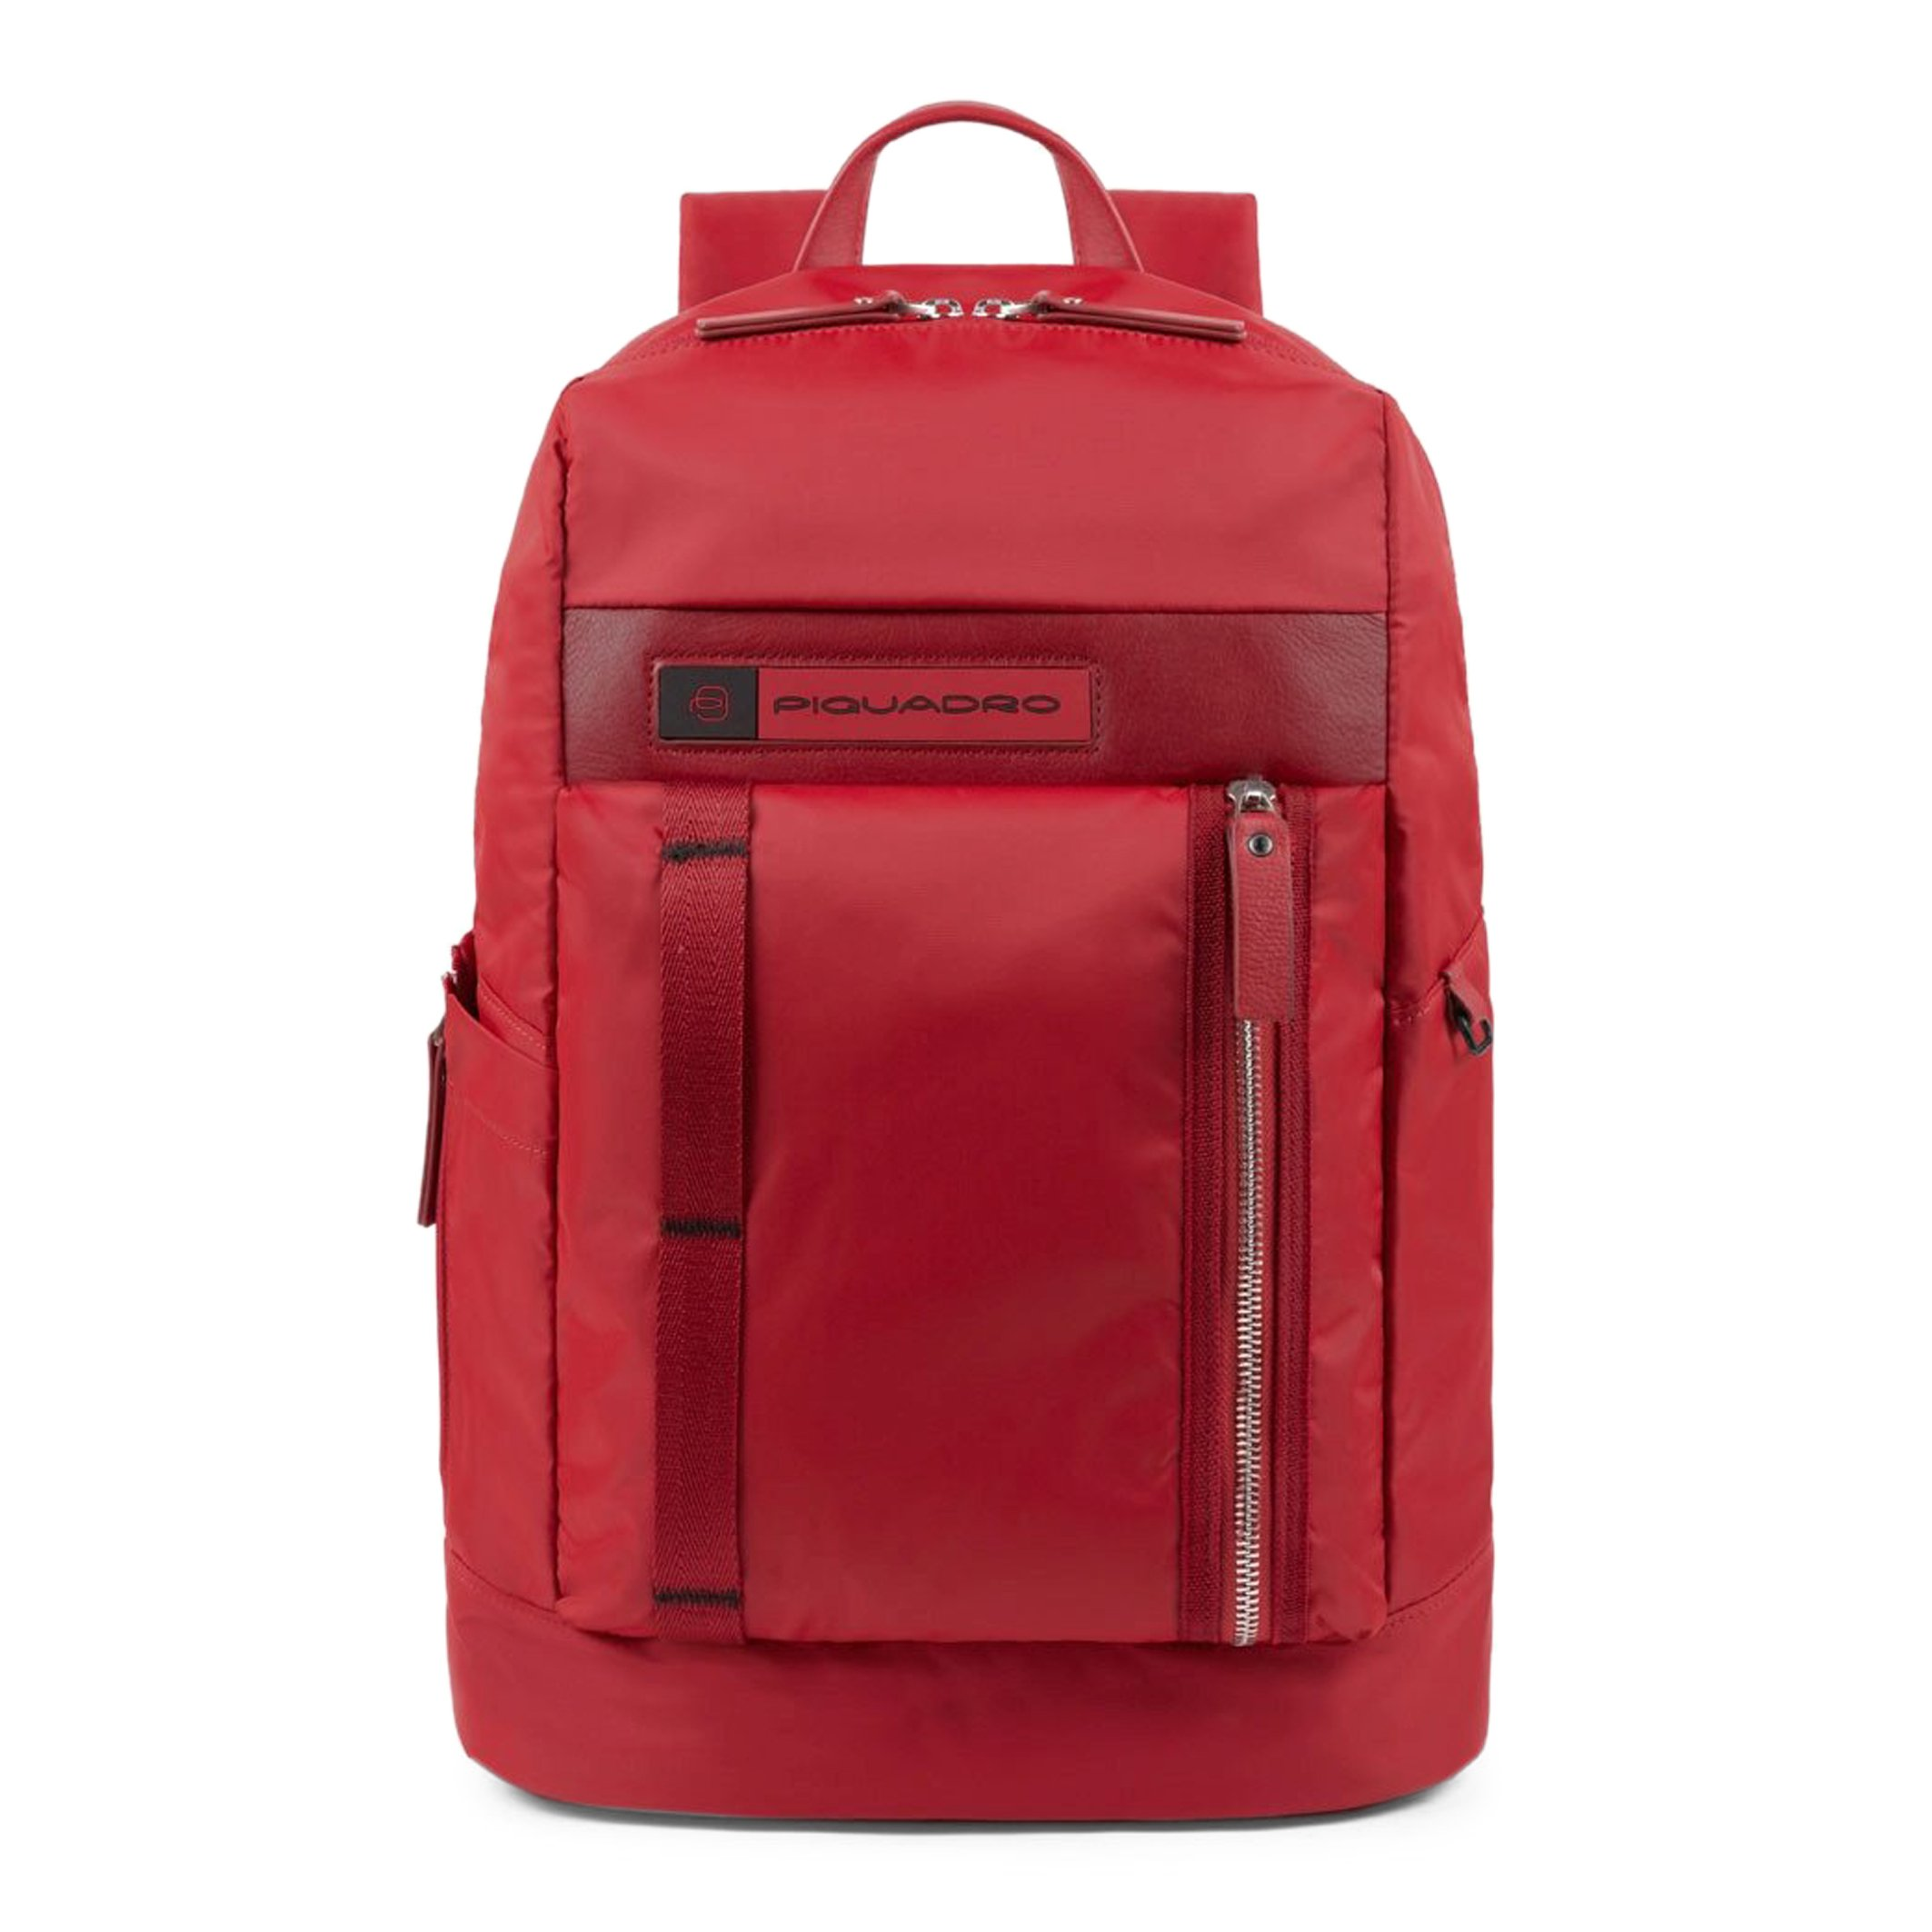 Piquadro Men's Backpack Various Colours CA4545BIO - red NOSIZE